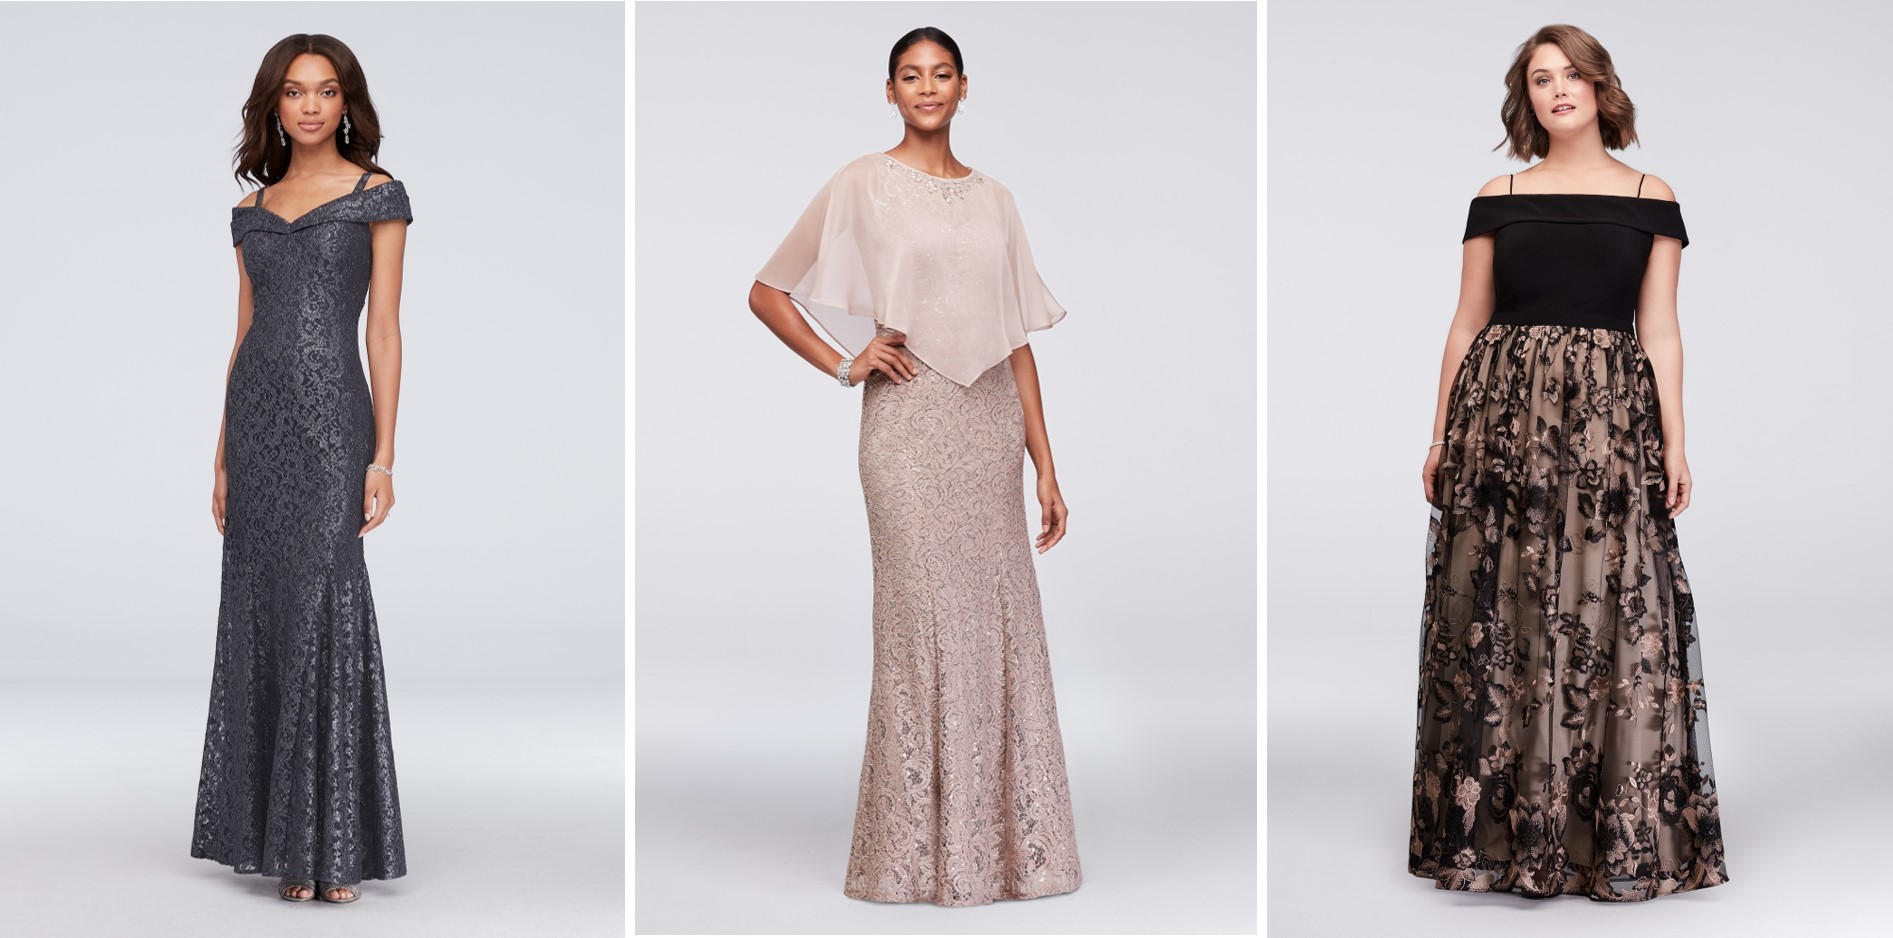 Three mother of the bride dresses on sale during David's Bridal's President's Day Weekend Sale: long dark grayoff-the-shoulder metallic lace dress, long blush colored lace dress with chiffon topper, long off-the-shoulder dress with black jersey top and black and nude floral applique skirt